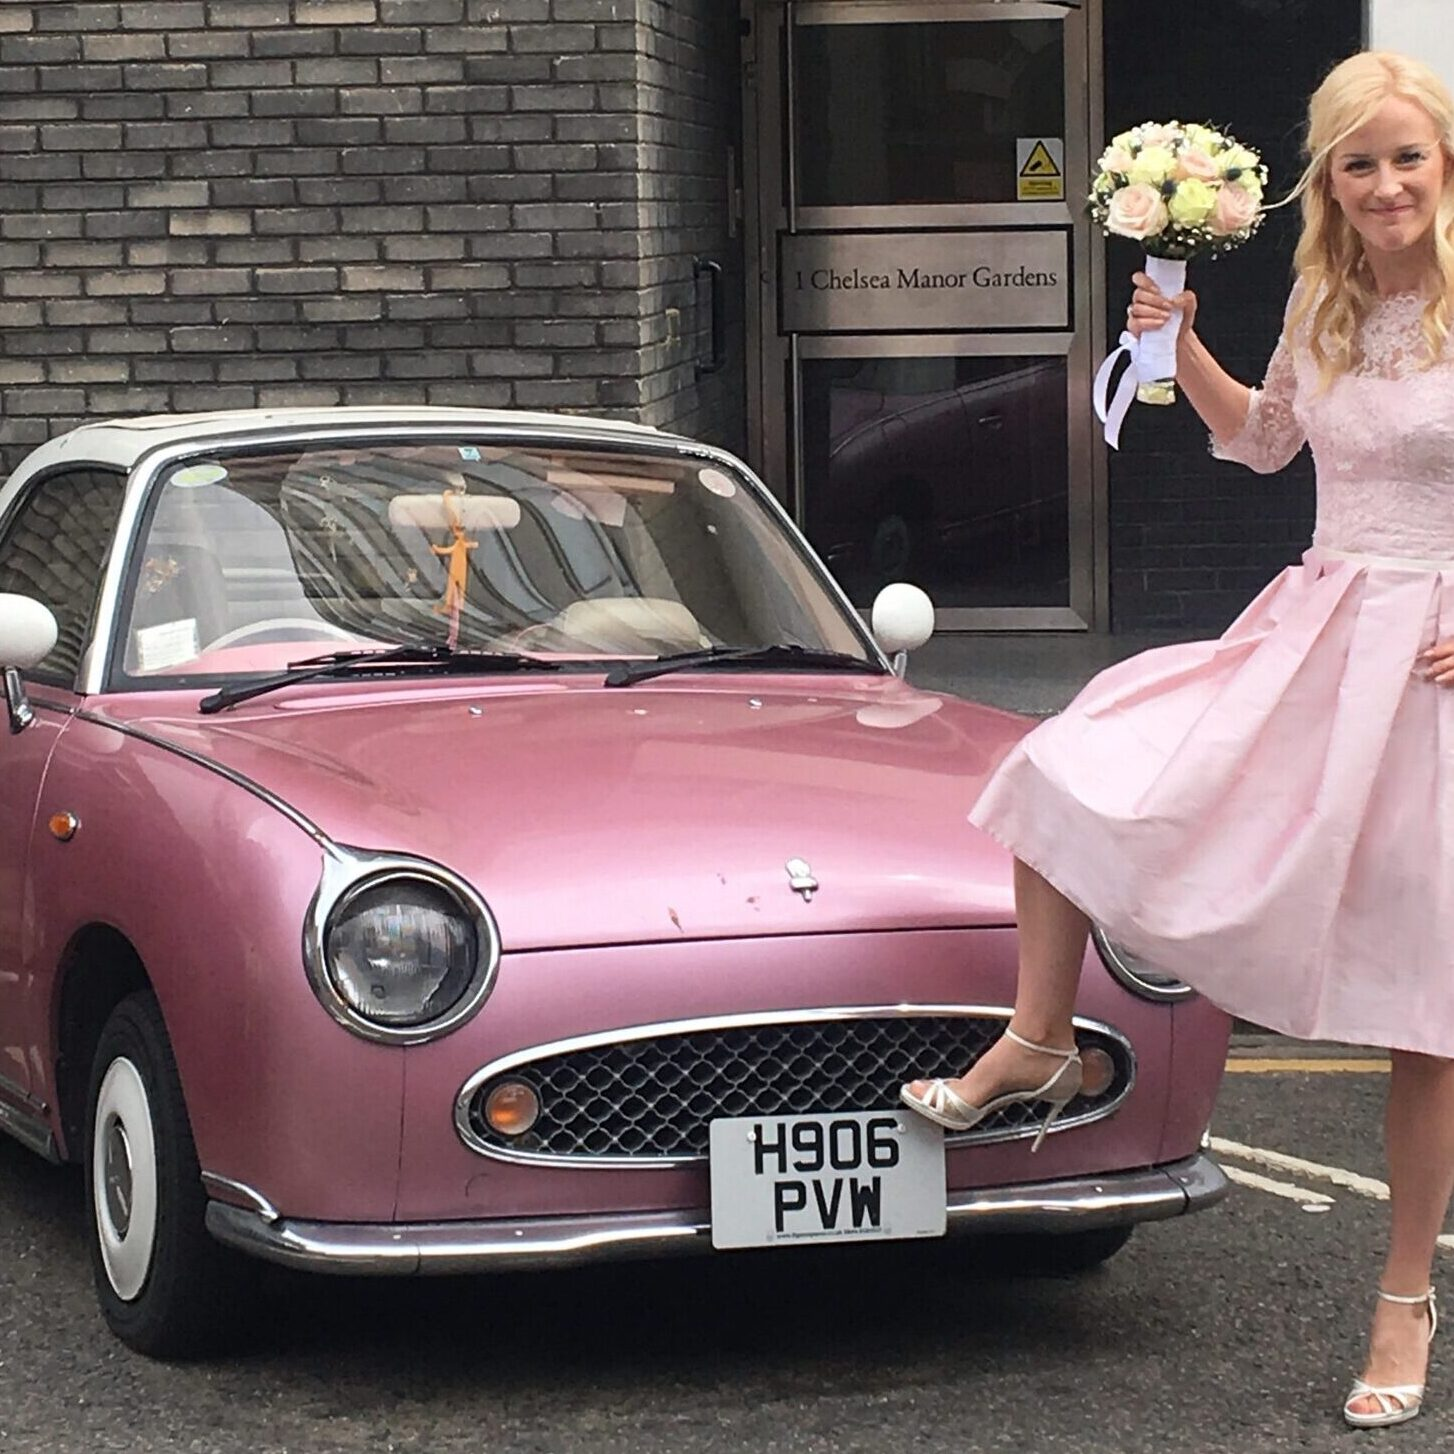 Pink 50's style bespoke wedding tea dress